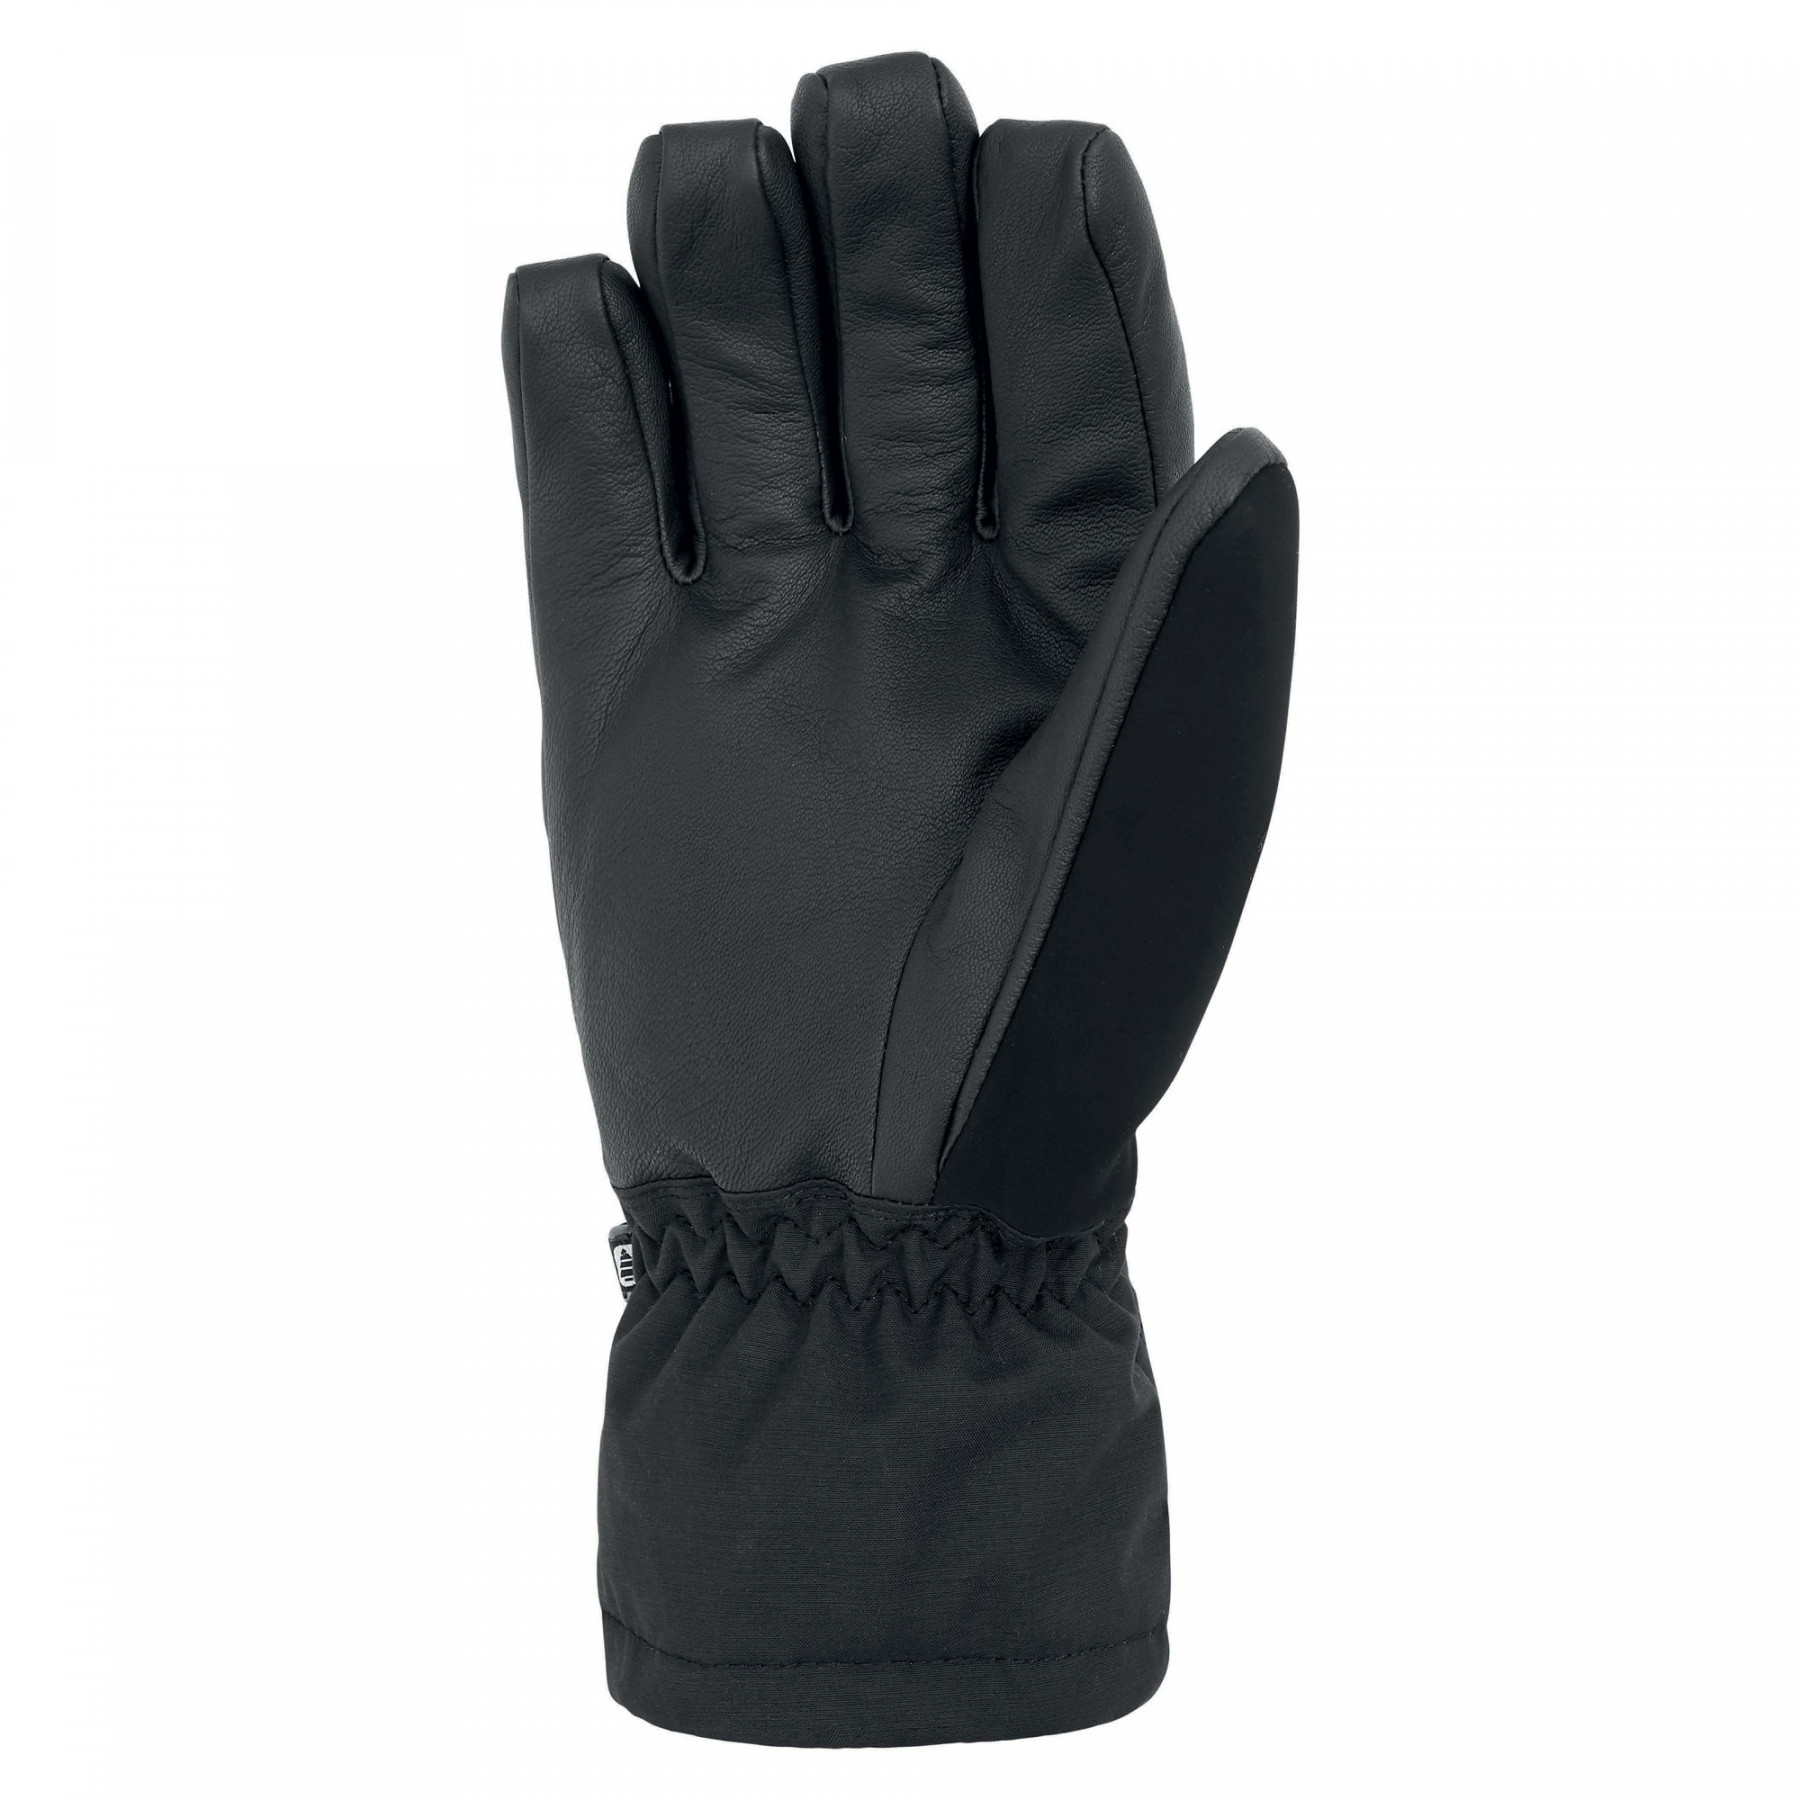 Gants de Ski Mankota - Black 1